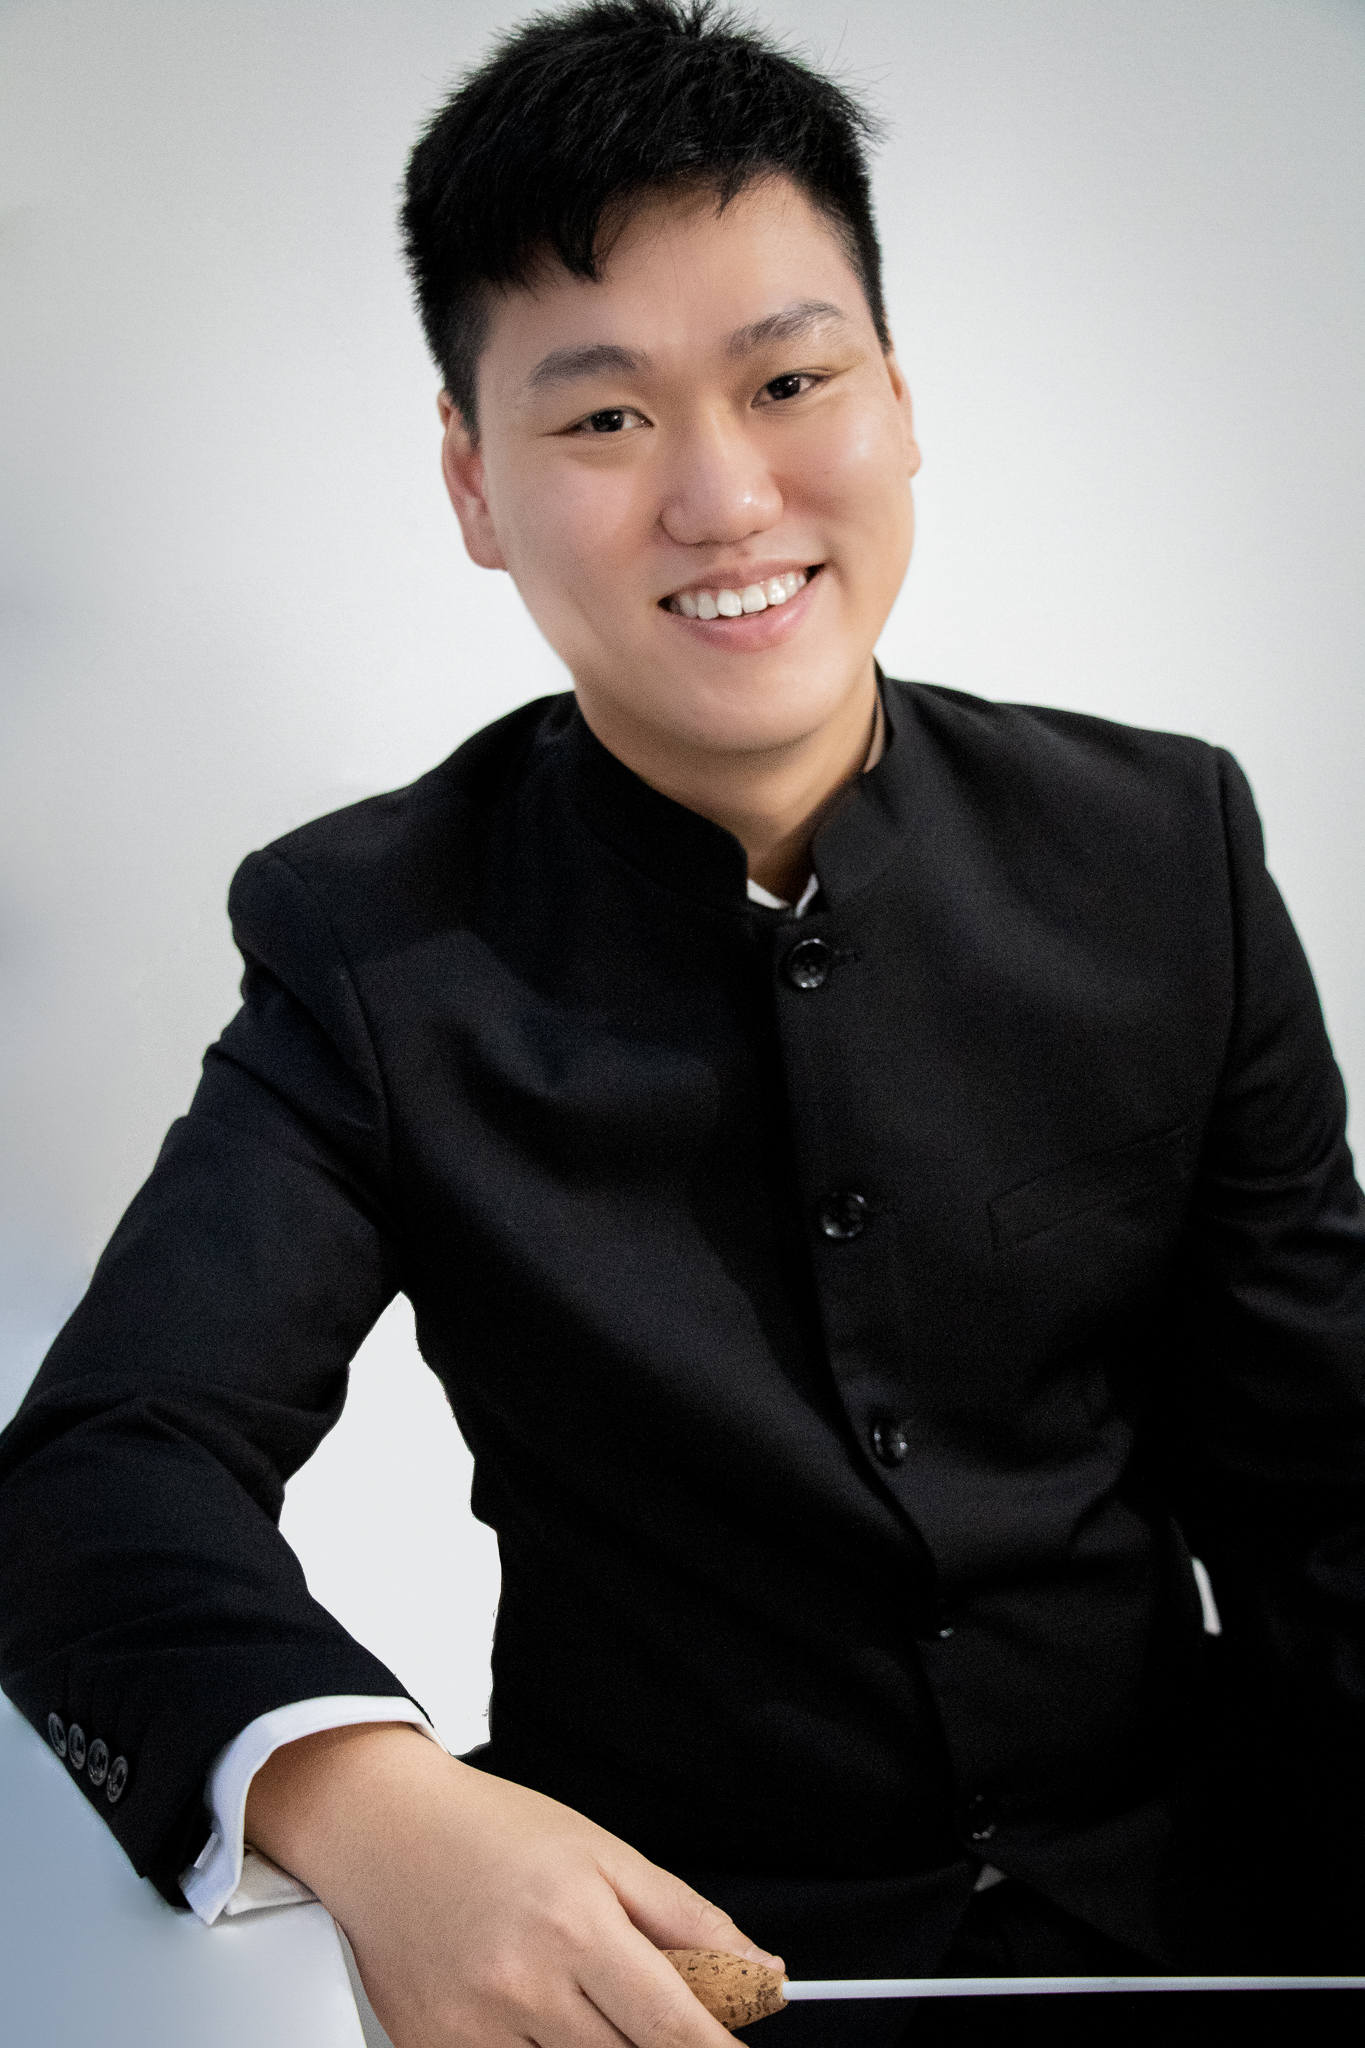 Headshot of conductor Melvin Tay